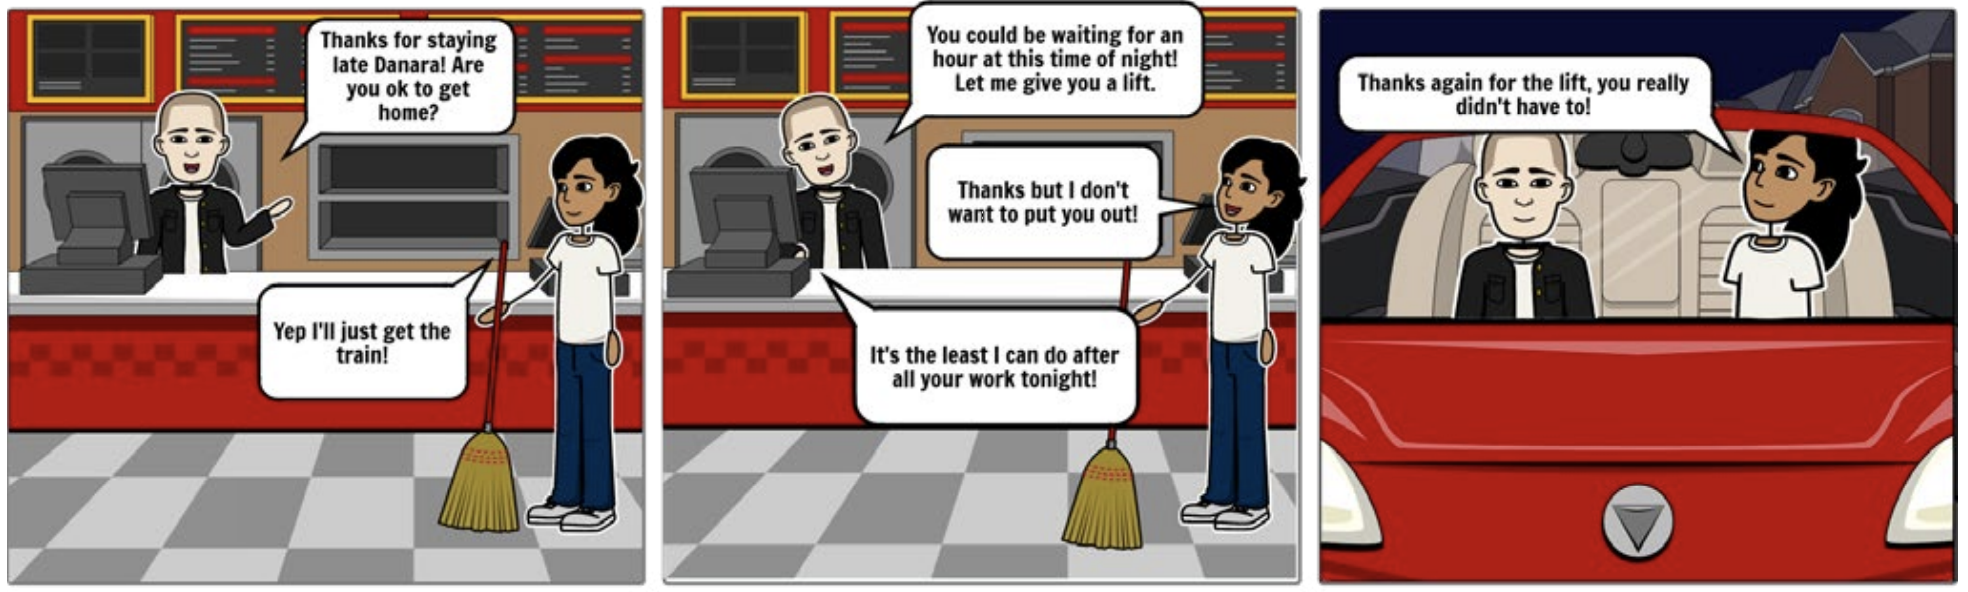 A comic strip depicting two people at a fast food restaurant. The text reads 'Thanks for staying late Danara! Are you okay to get home?'. 'Yep I'll just get the train!'